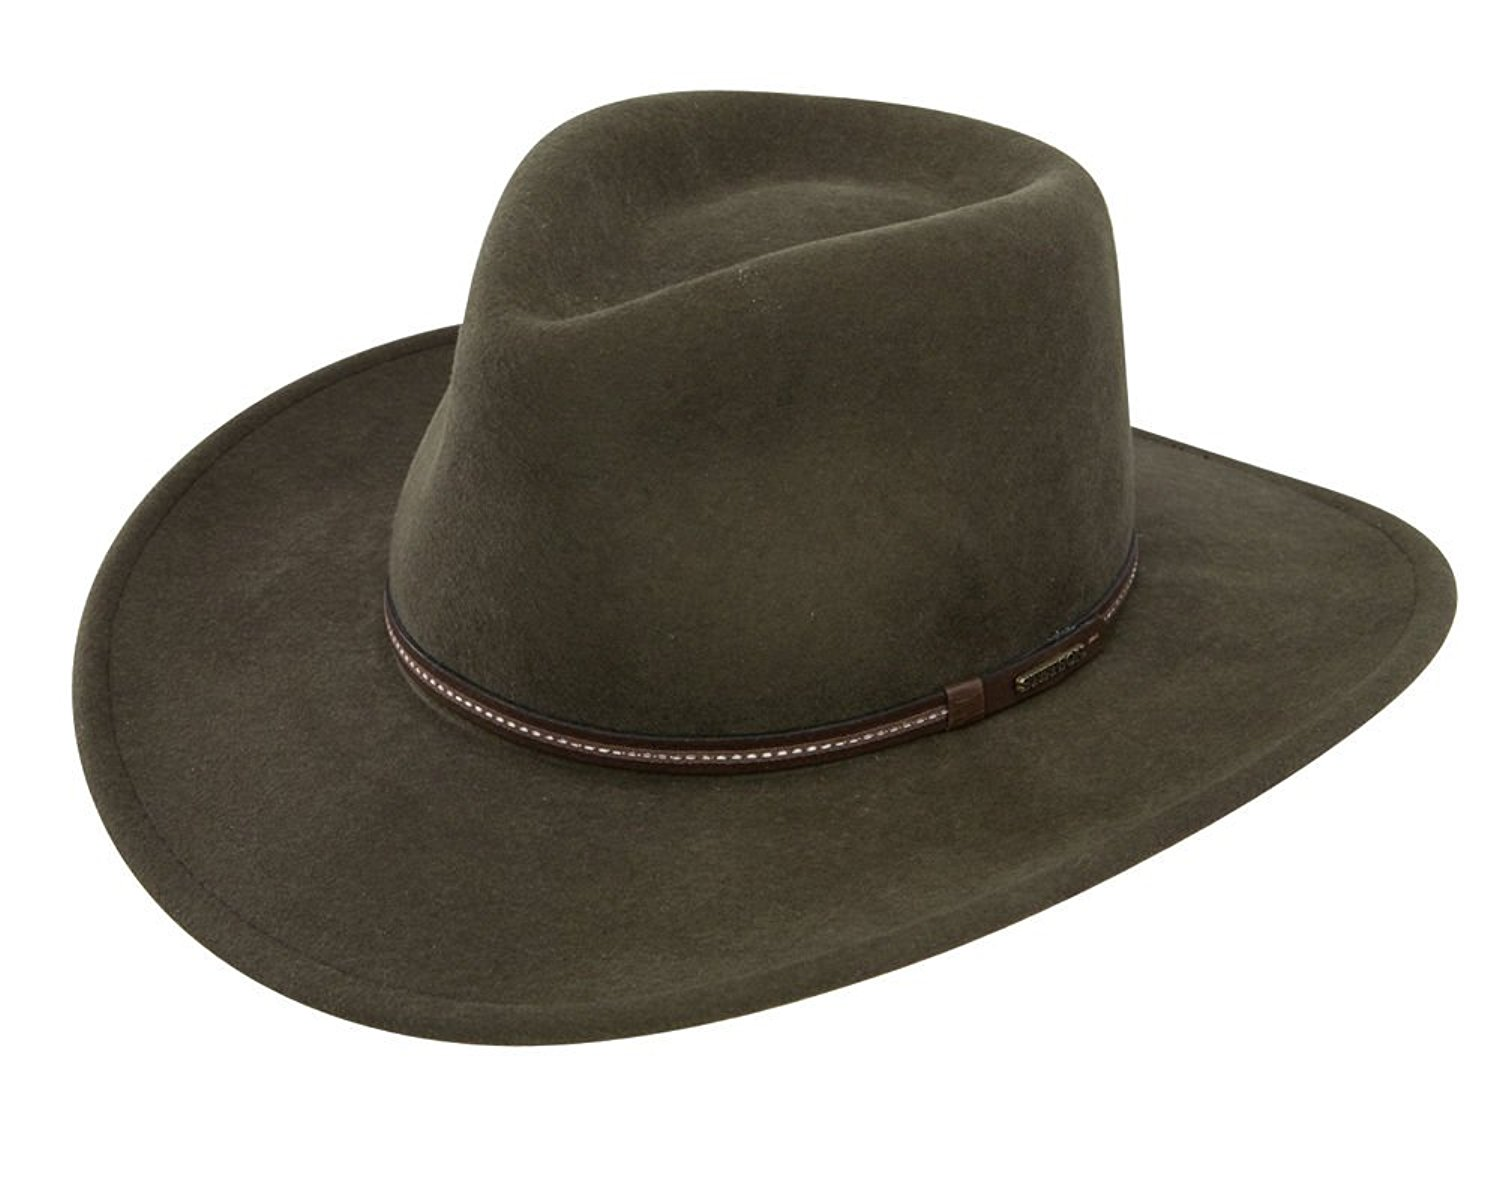 Get Quotations · Stetson Men s Gallatin Sage Green Crushable Wool Hat -  Swgltn-813242 Sage 60db21567880